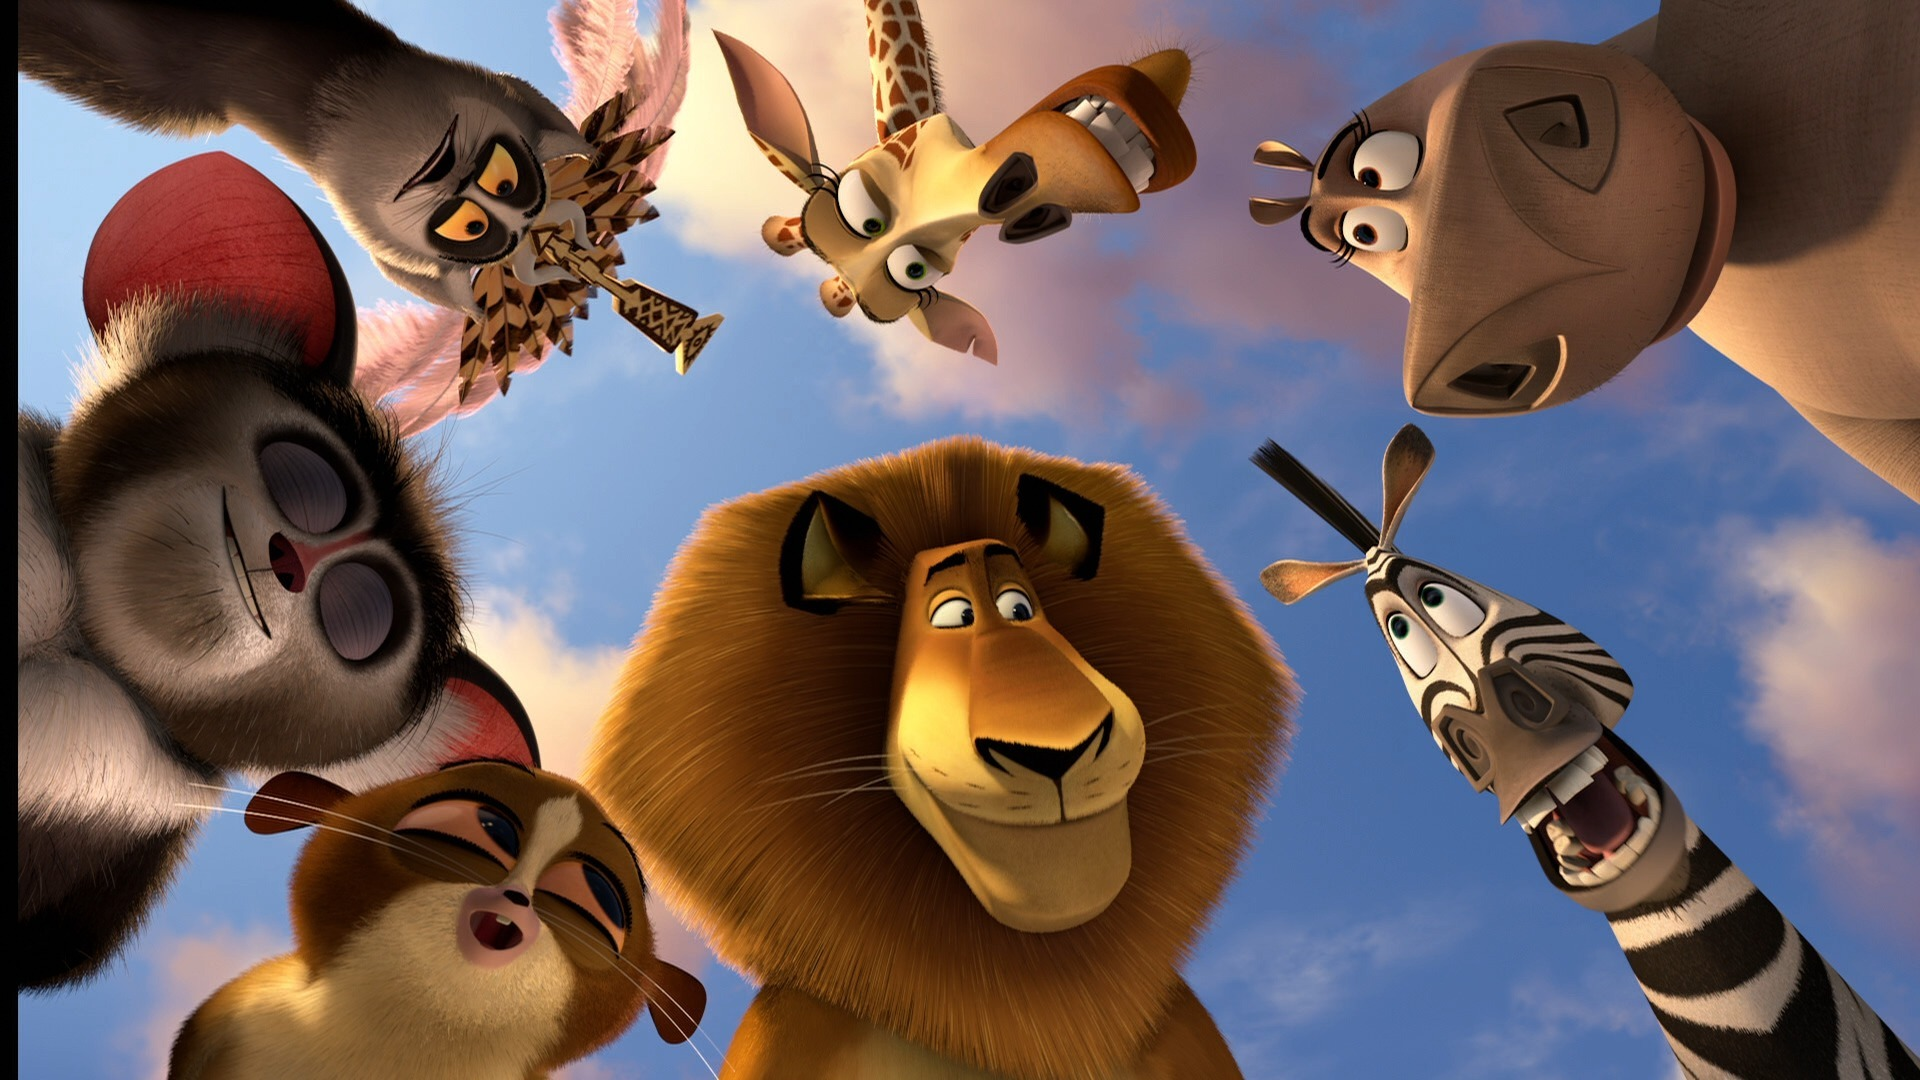 Madagascar 3 Cartoon Characters : Madagascar characters picture wallpaper